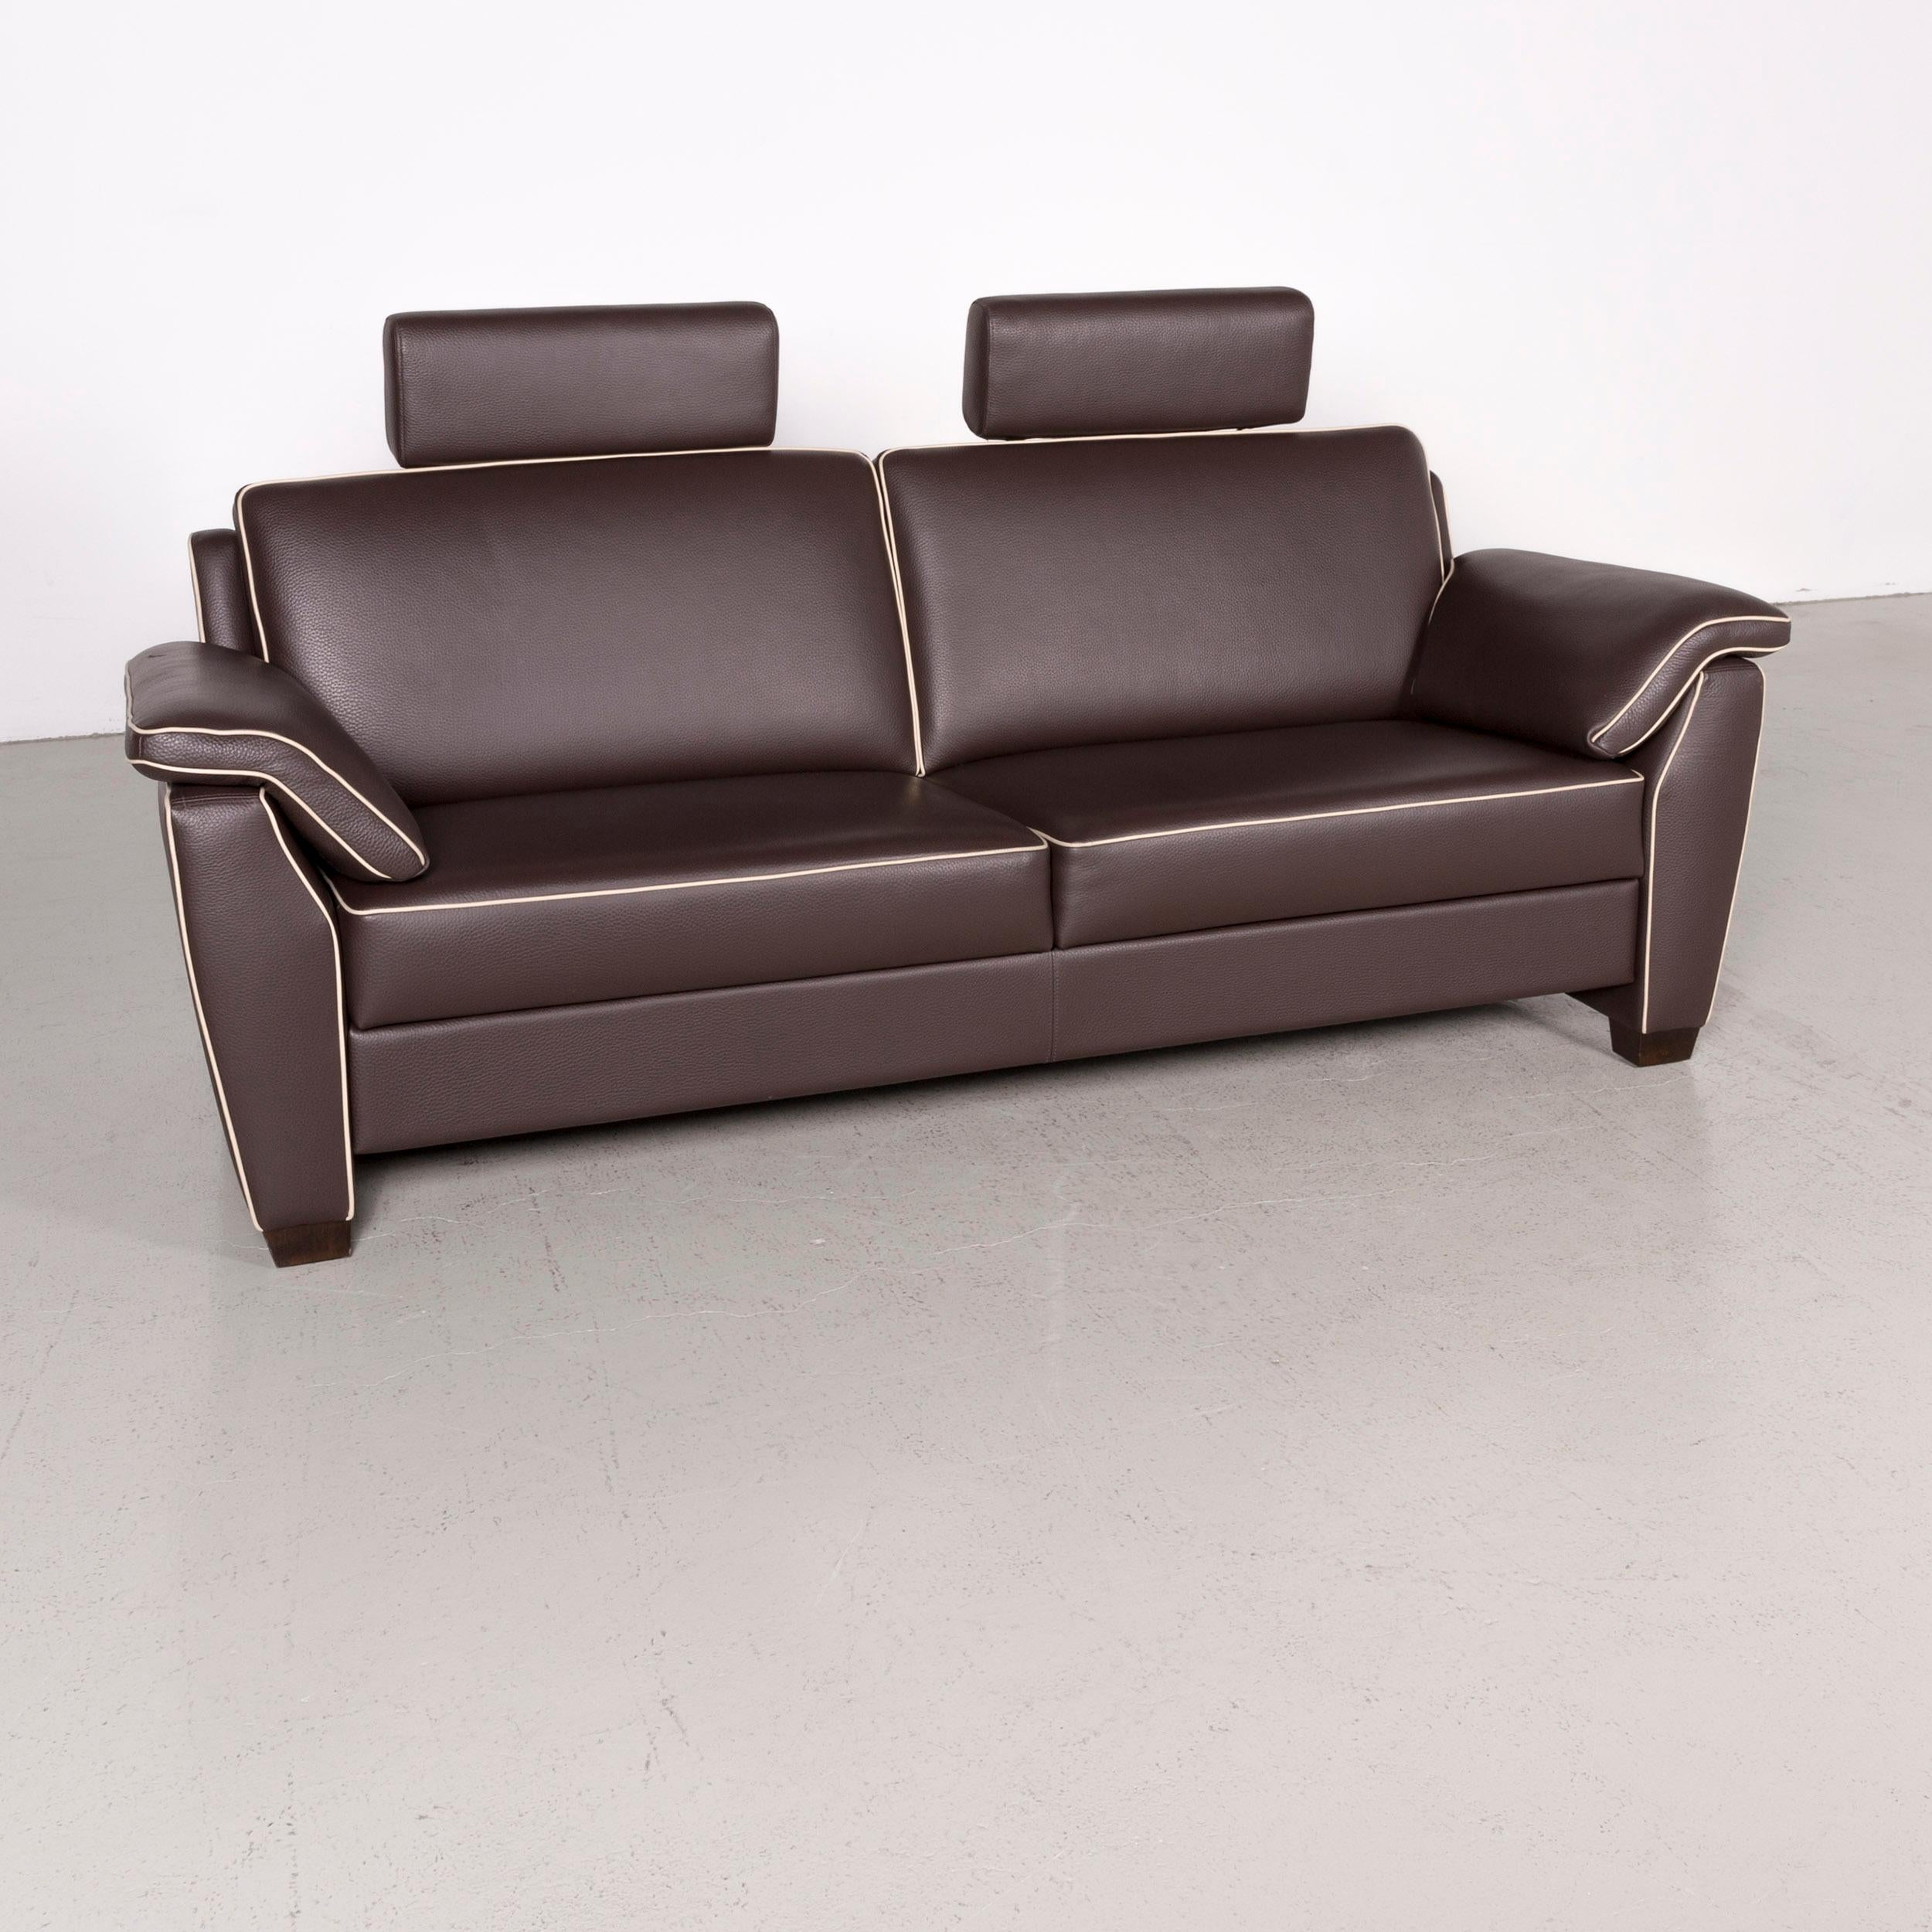 Fine Frommholz Trevi Designer Leather Sofa Brown Genuine Leather Three Seat Couch Pdpeps Interior Chair Design Pdpepsorg